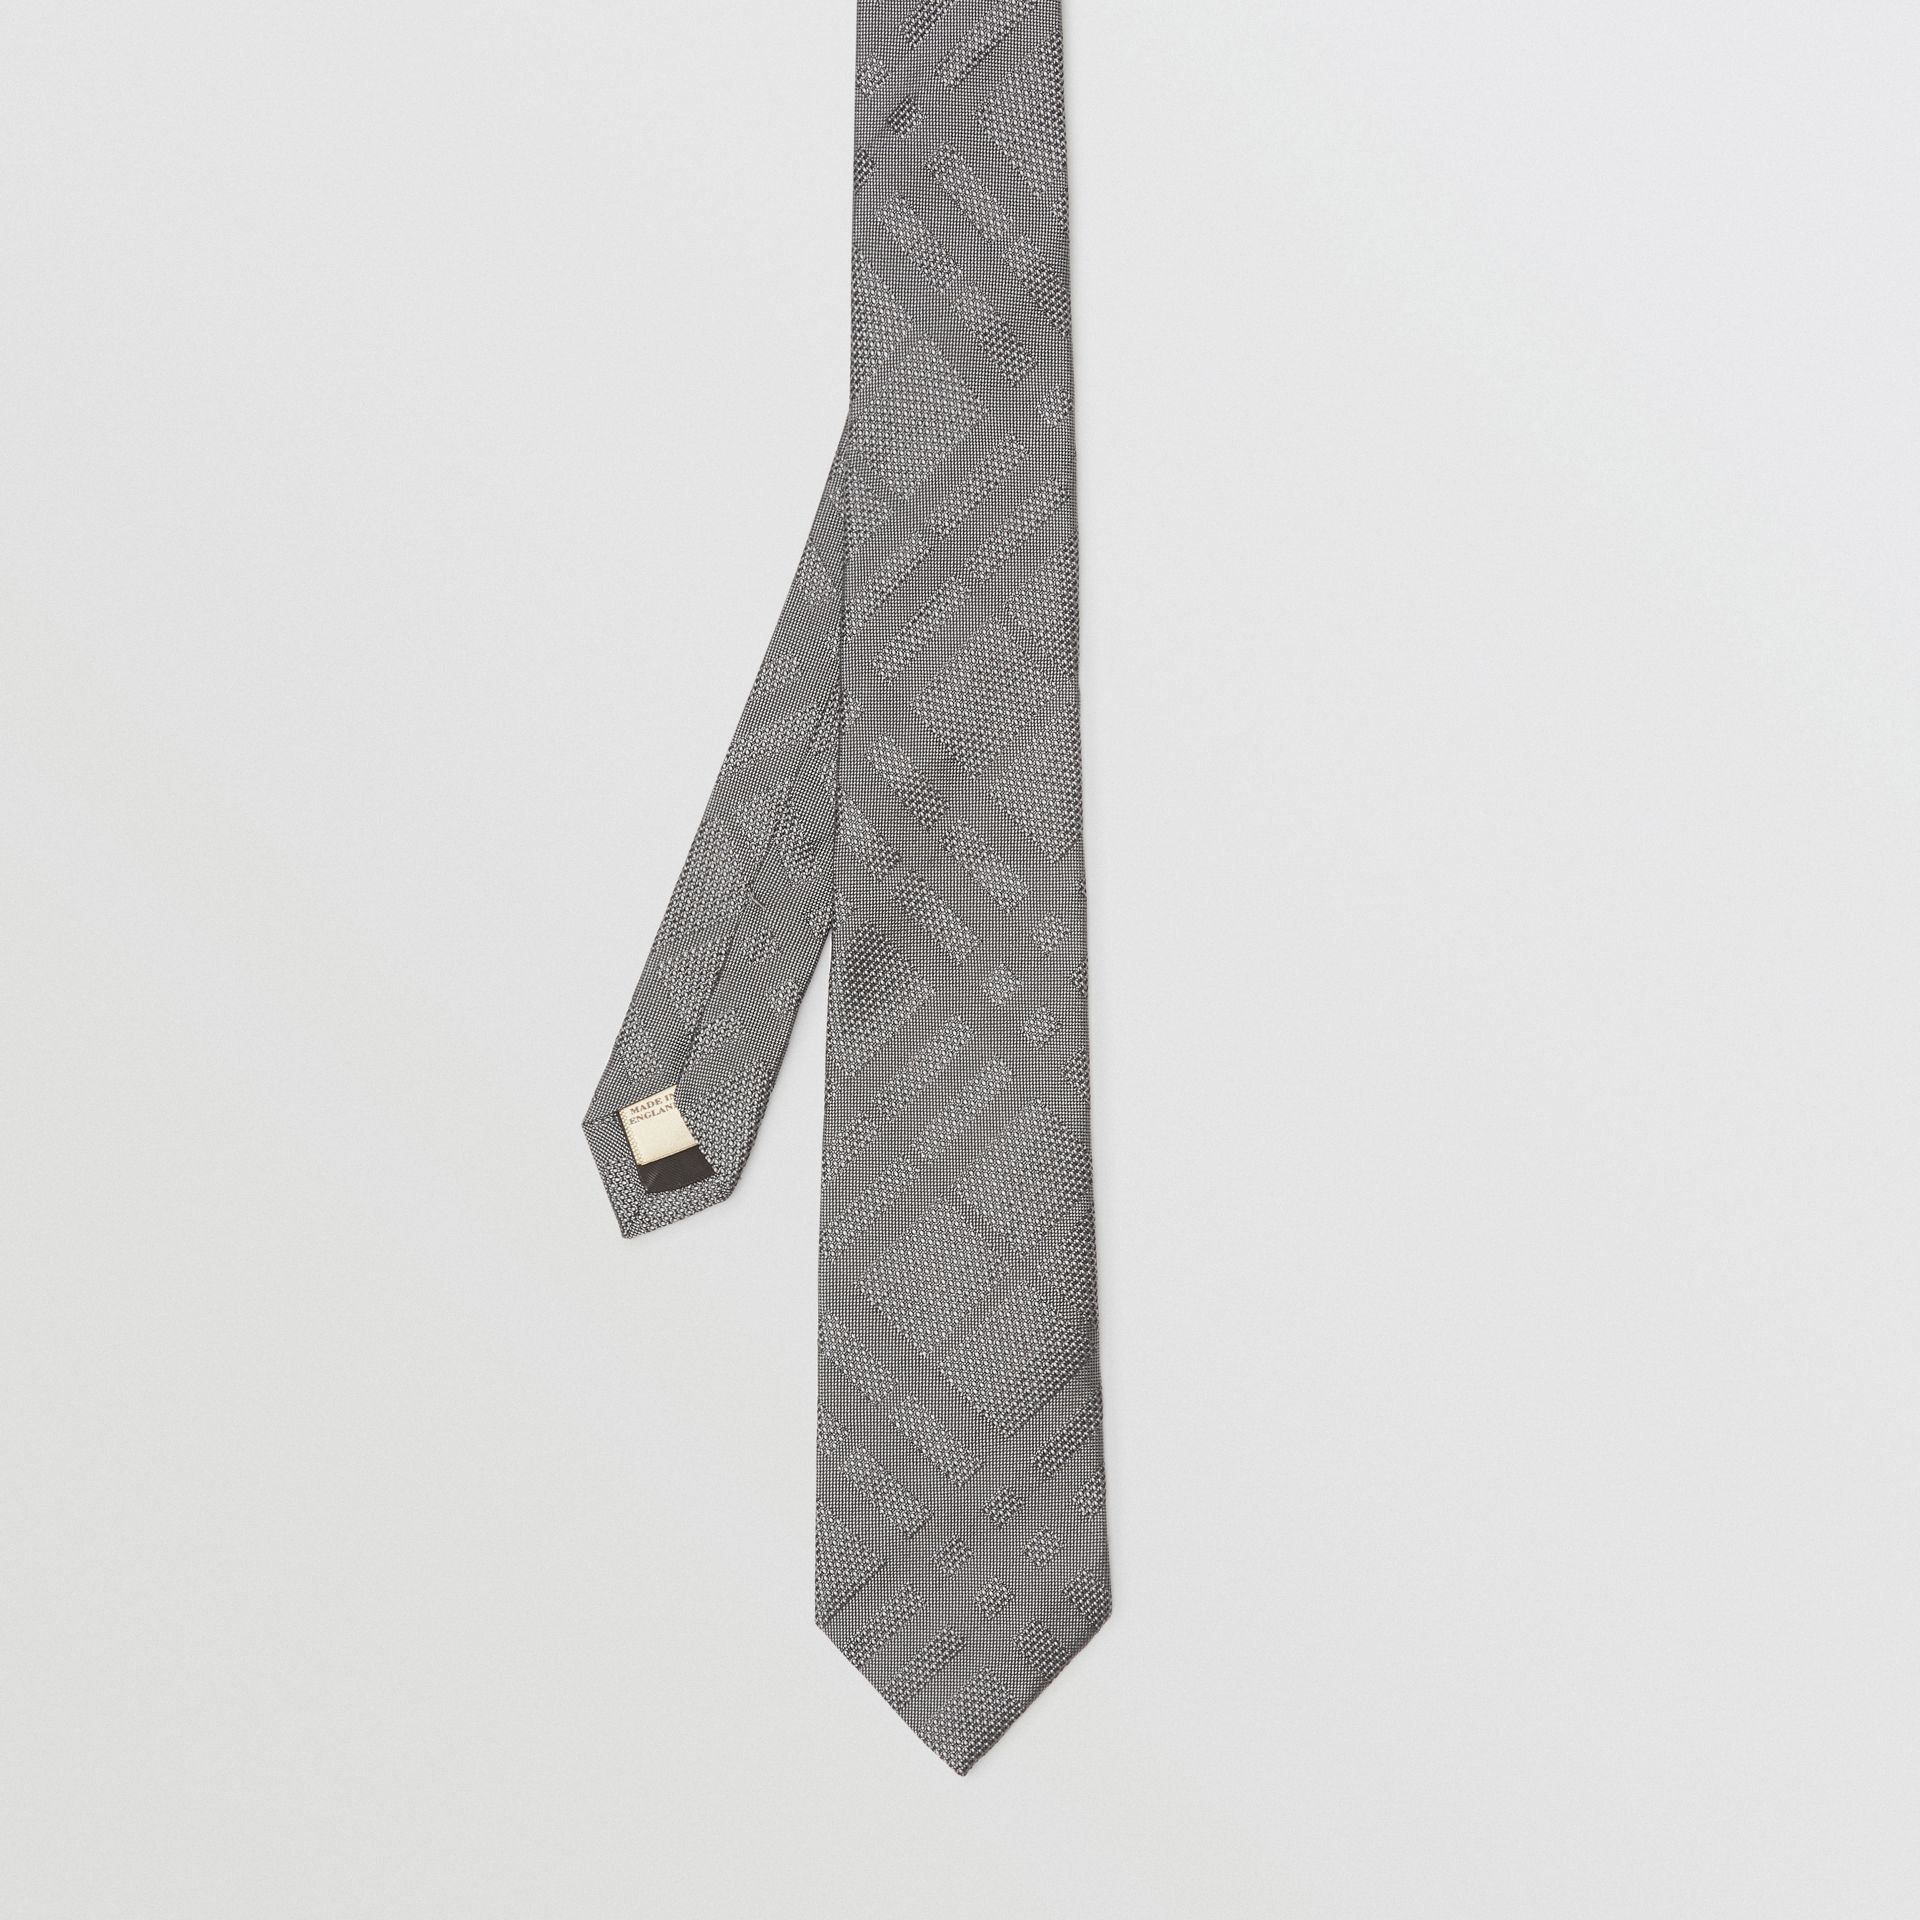 Classic Cut Check Silk Jacquard Tie in Charcoal - Men | Burberry United Kingdom - gallery image 4